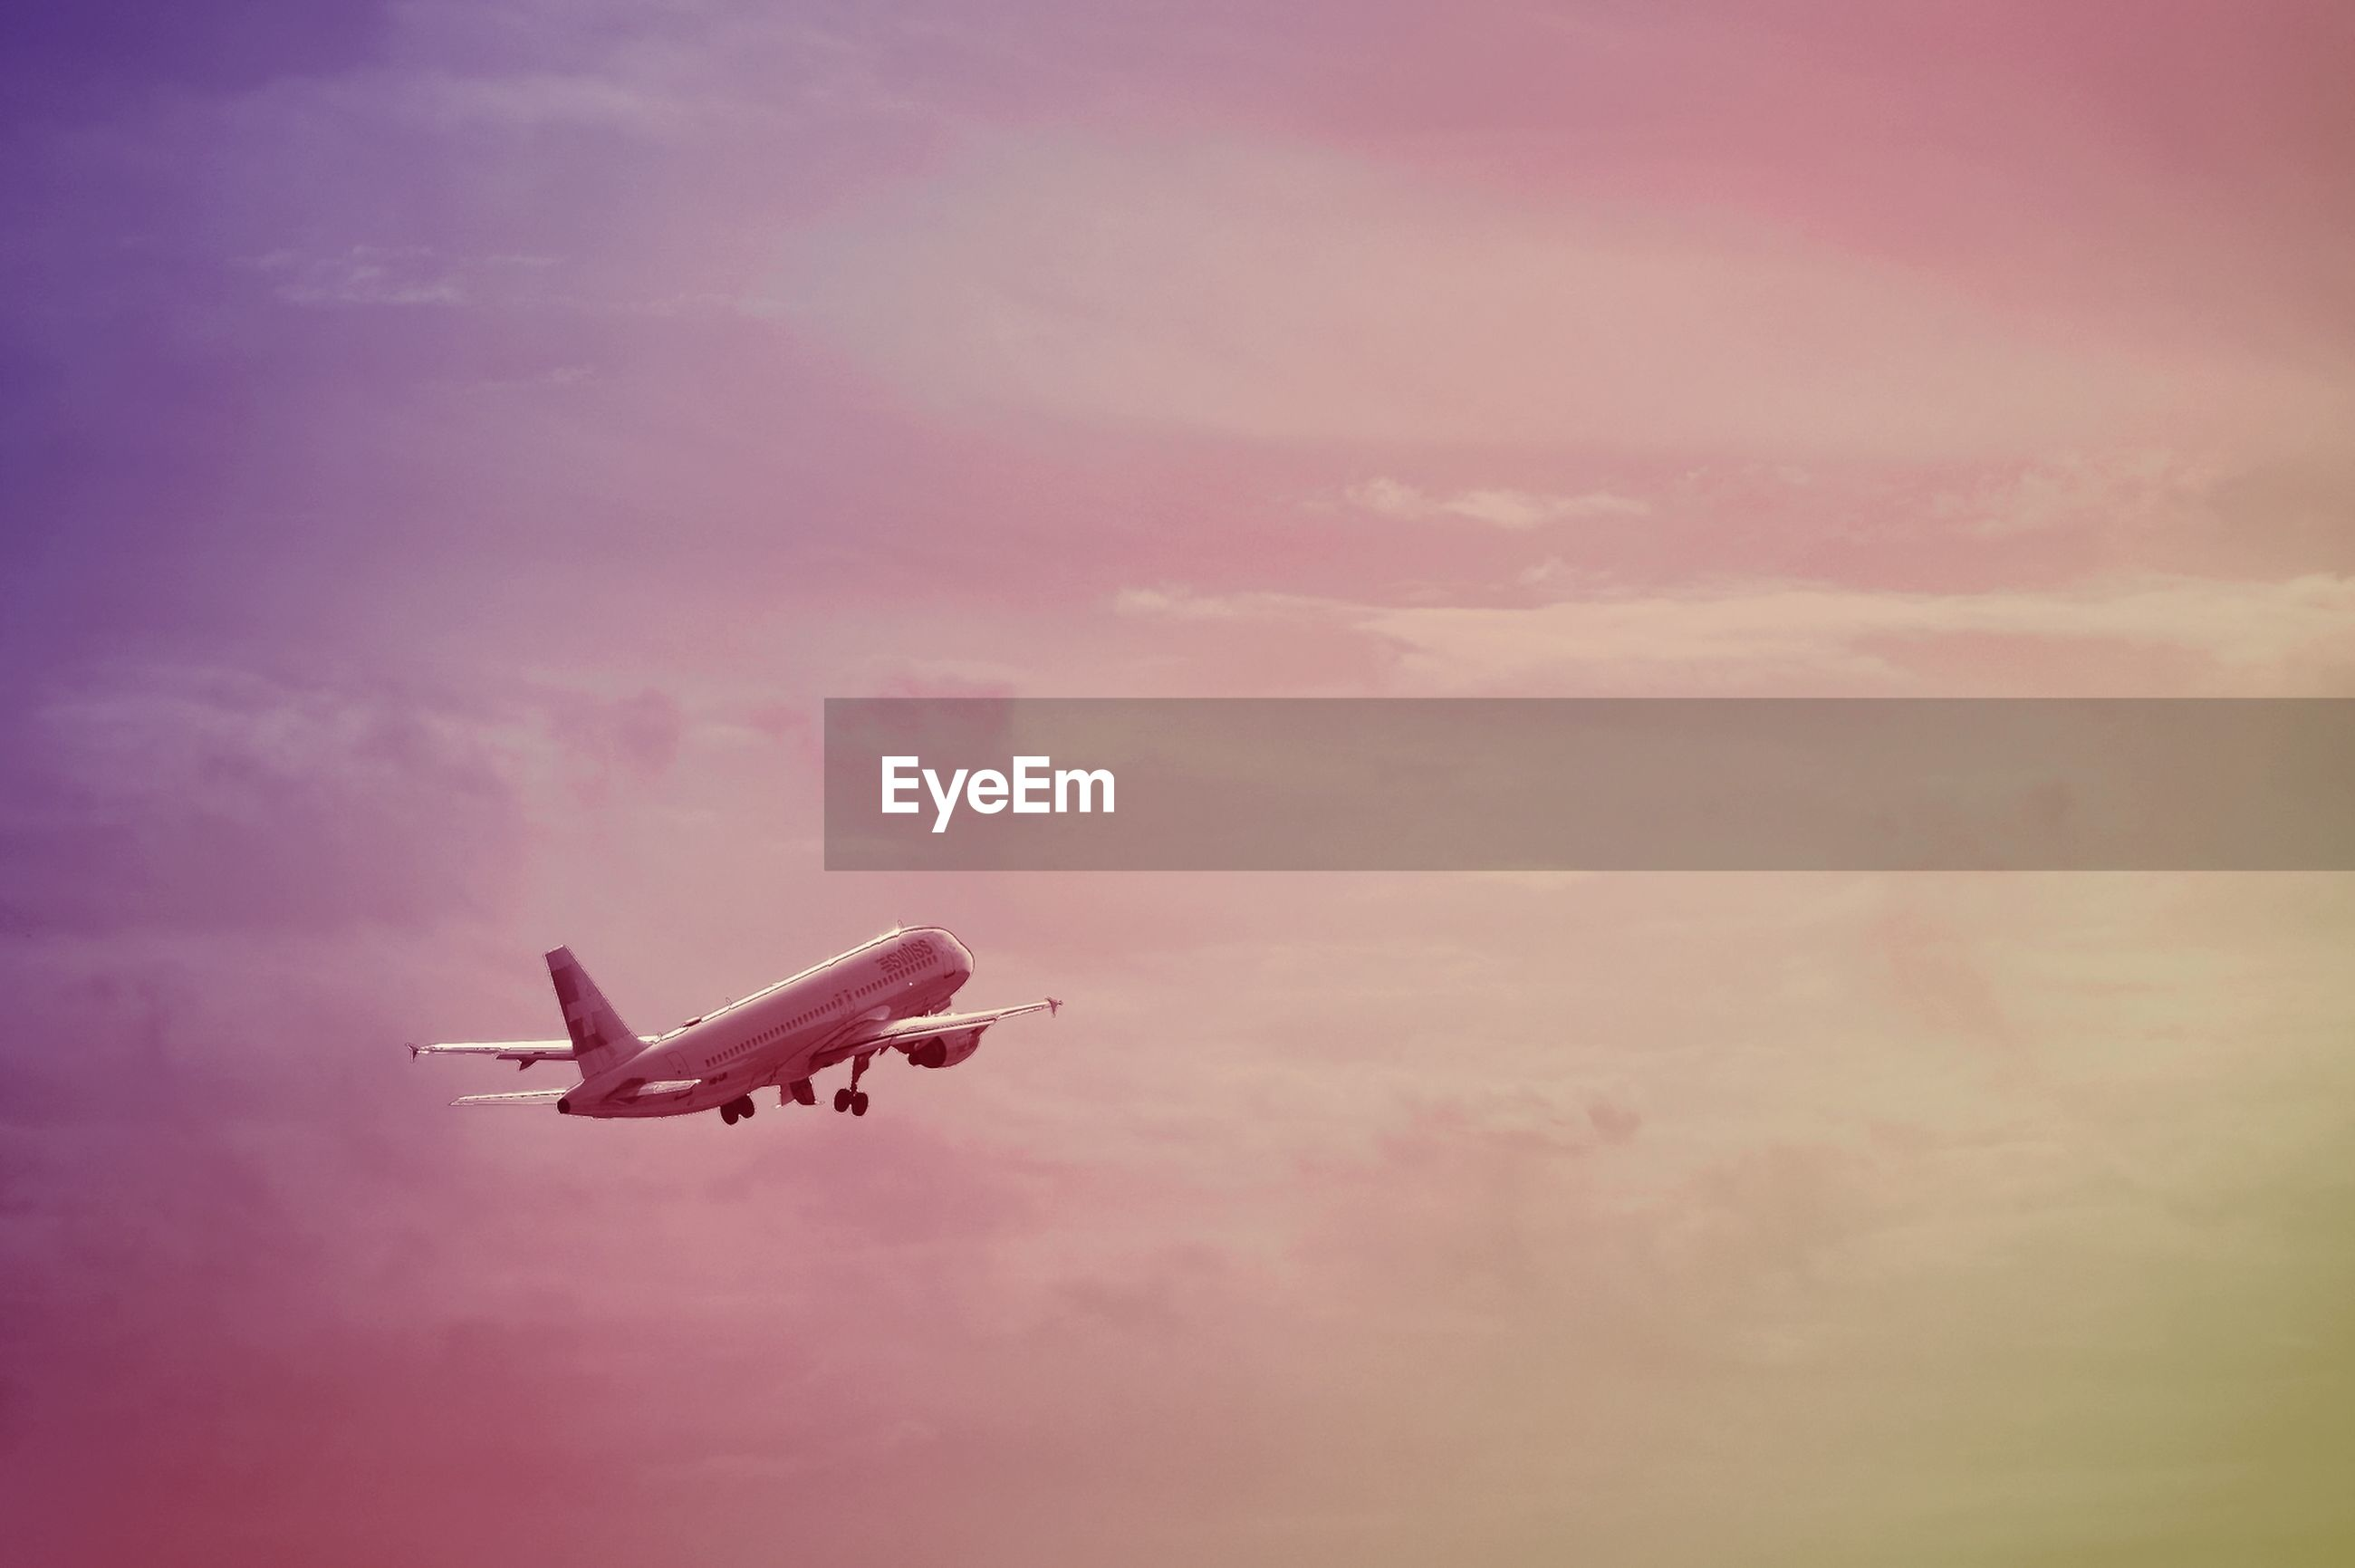 sky, mode of transport, transportation, cloud - sky, airplane, air vehicle, cloudy, sunset, low angle view, outdoors, cloud, travel, weather, no people, nature, dusk, nautical vessel, day, beauty in nature, on the move